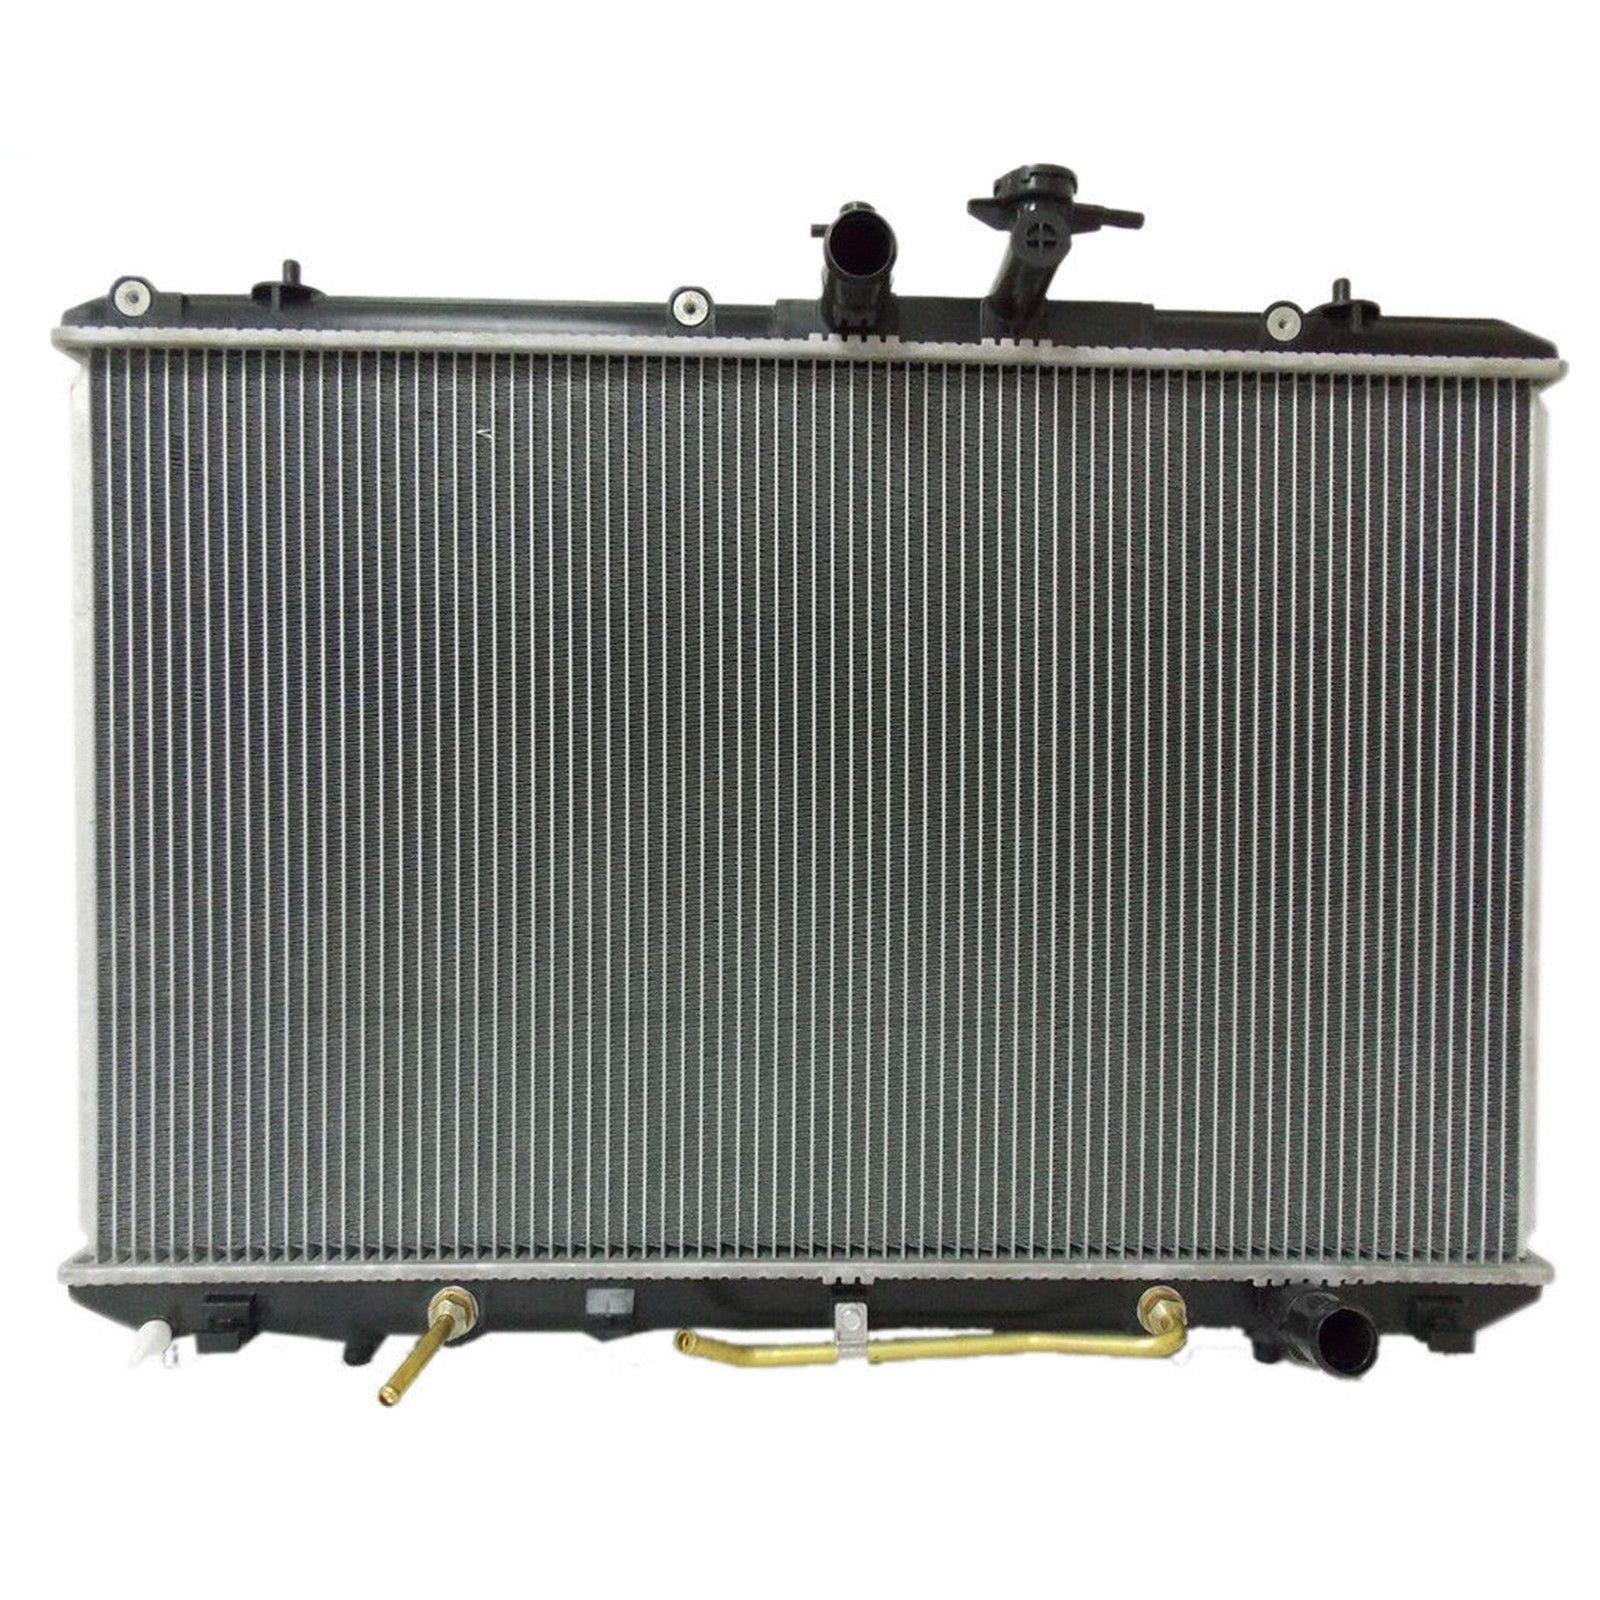 ECCPP Radiator 13023 for 2008-2013 Toyota Highlander 3.5L